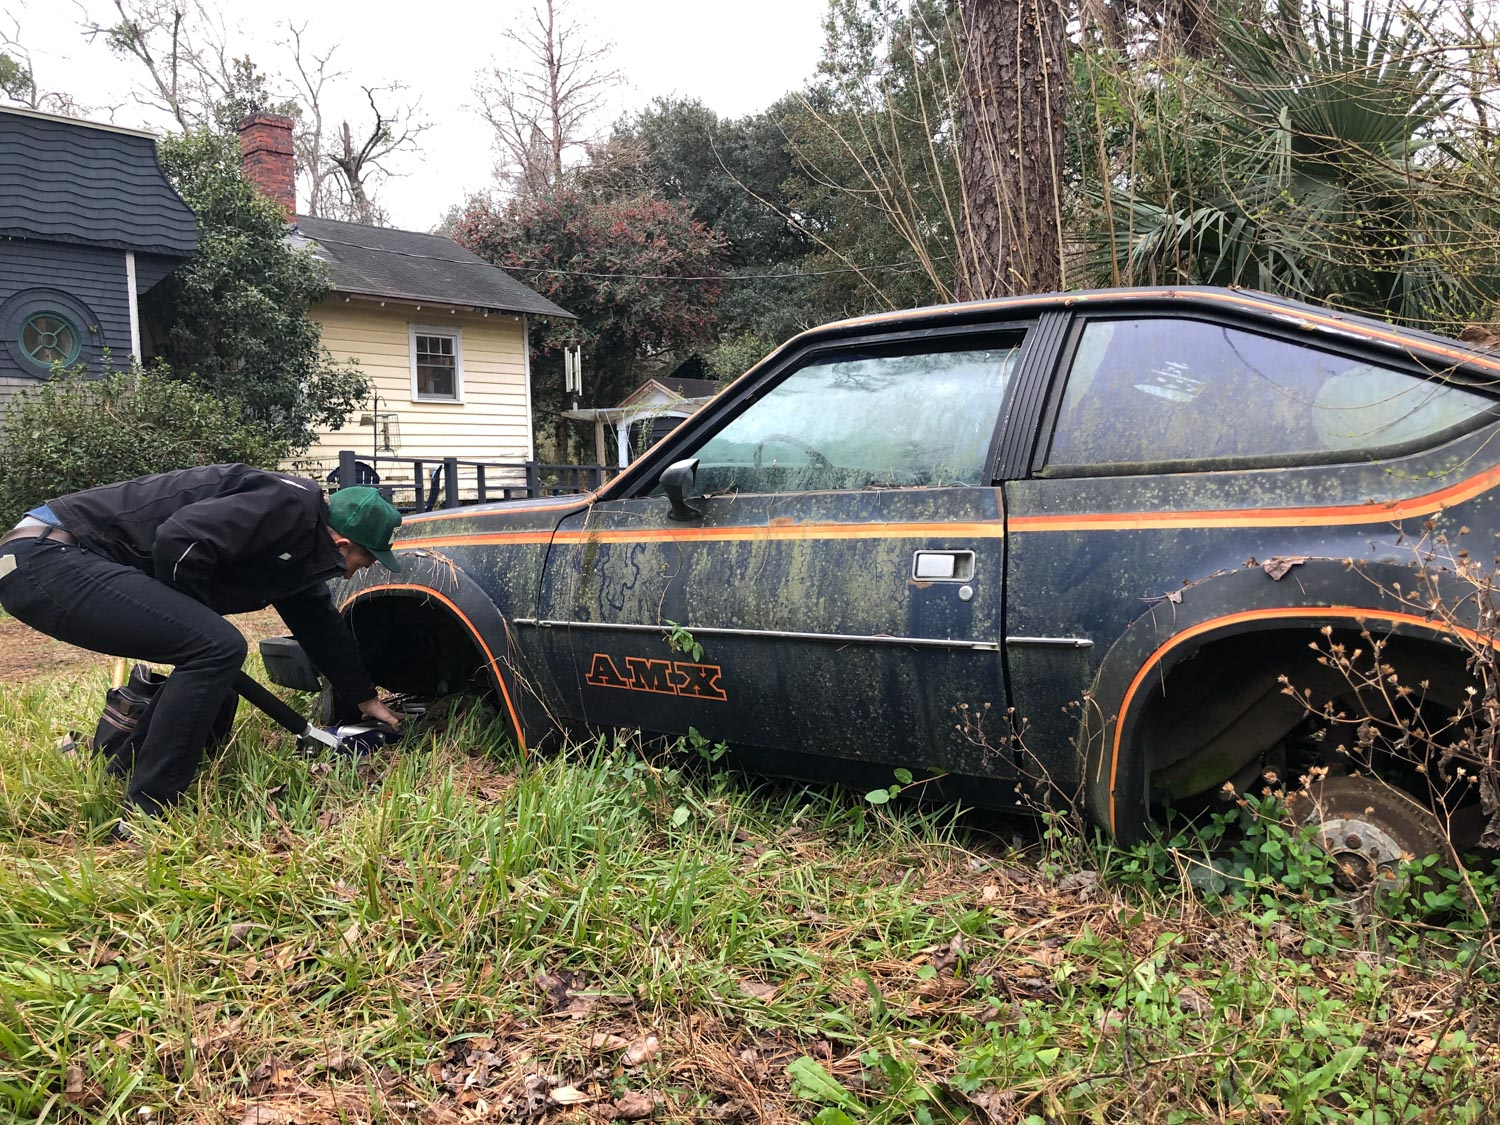 amc amx derelict moss covering on ground